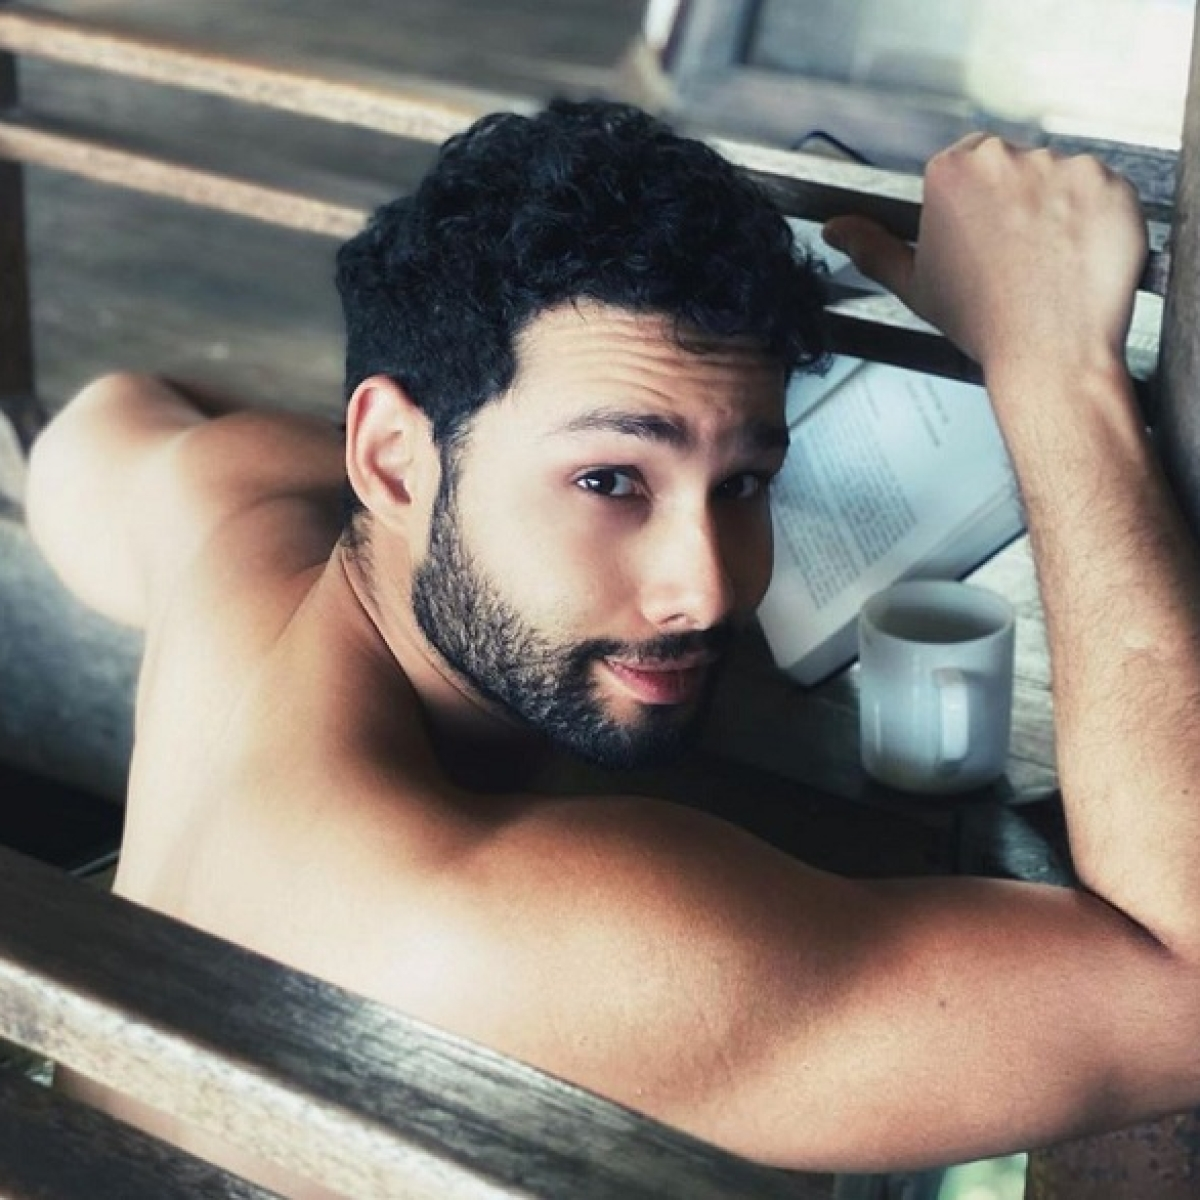 Want my audience to grow with me and share my taste, says 'Gully Boy' actor Siddhant Chaturvedi